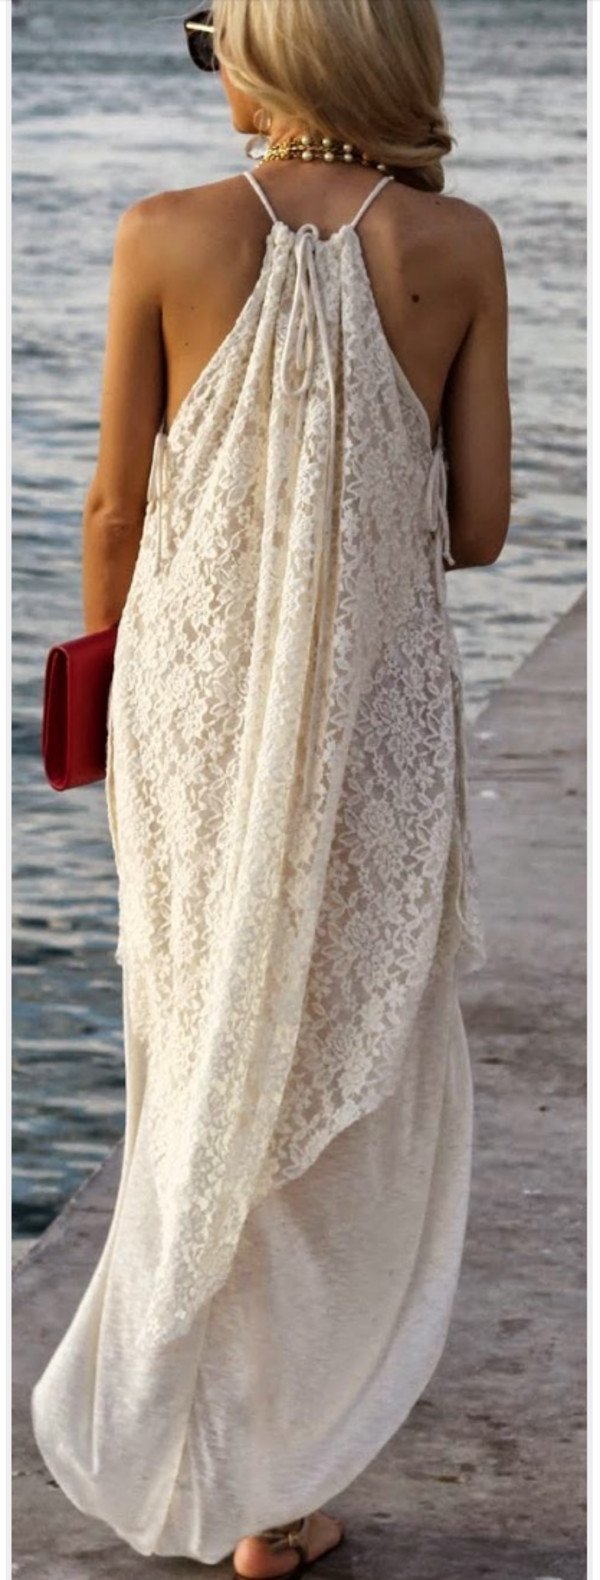 dress maxi lace dress maxi dress creame cream beige blonde hair wedding beach halter neck flowy white dress white lace dress lace maxi dress long dress white maxi dress flowy dress open back dresses hippie sleeveless beige dress sleeveless dress white lace maxi dress lace beach dress beach dress boho boho dress